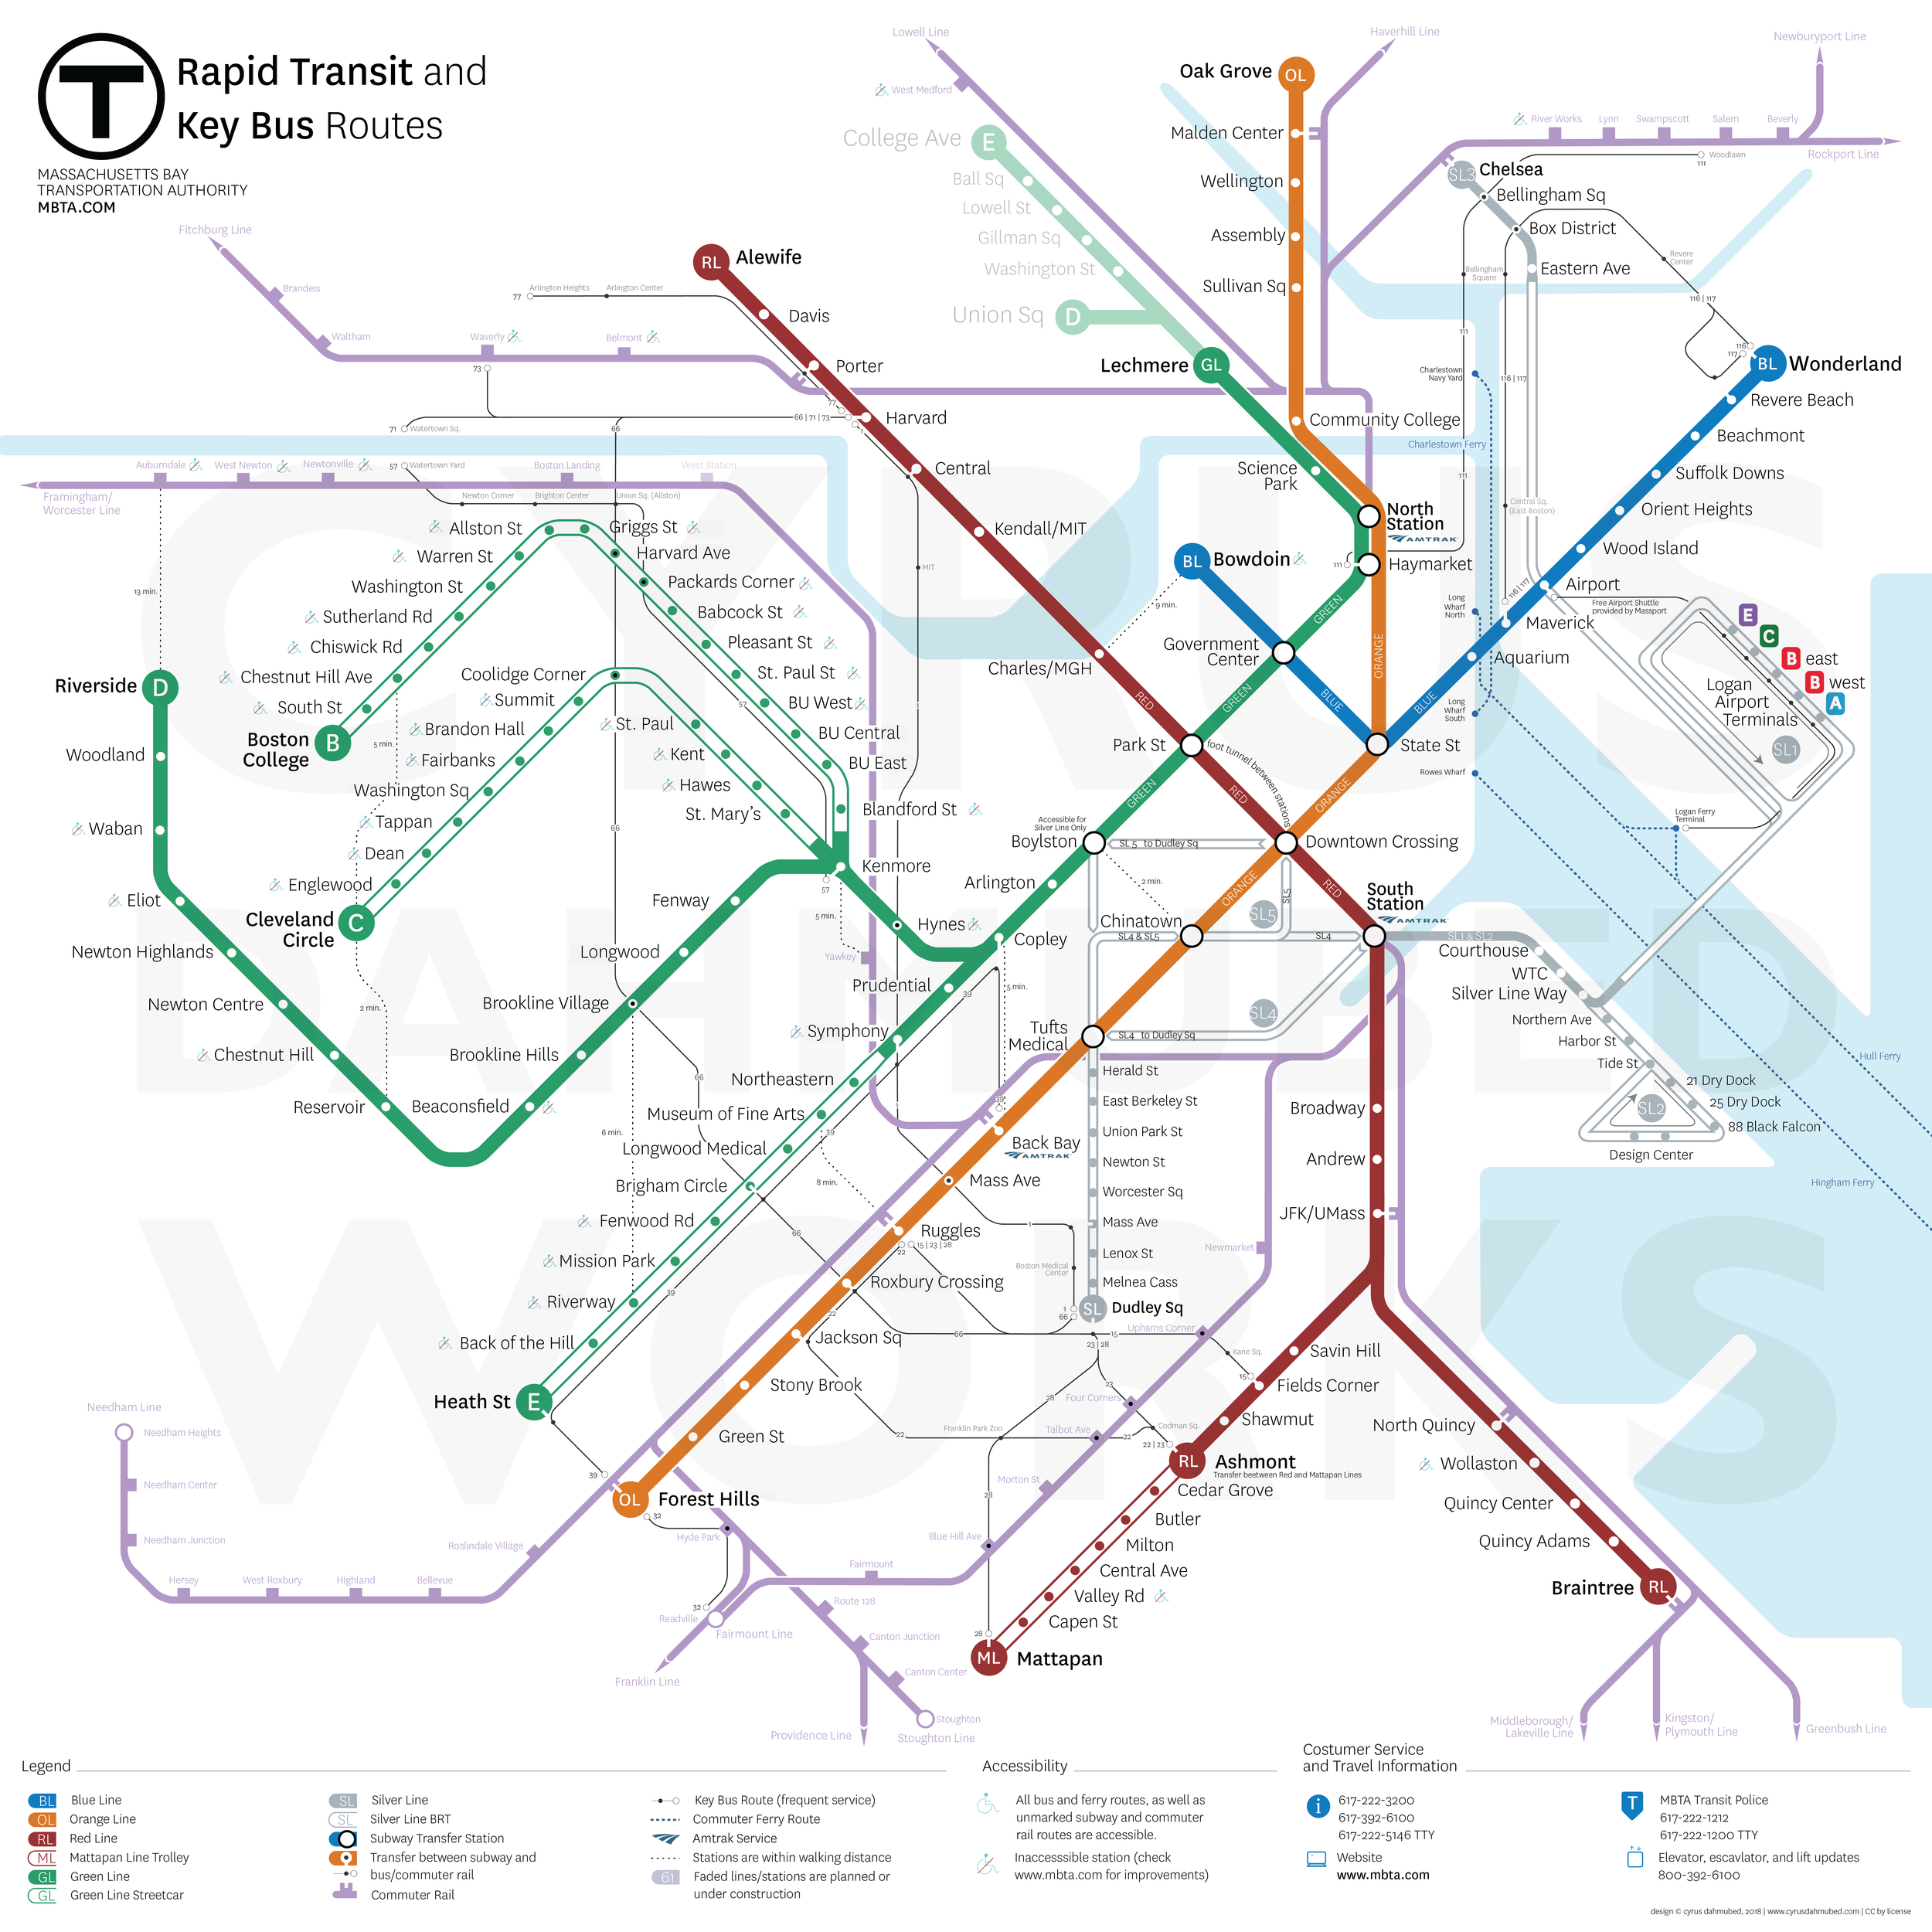 This map of the existing MBTA system includes a simplified geography, clearer bus routes, more Commuter Rail stops, walking connections between stations, enhanced georealism, and clear designation of Bus Rapid Transit (BRT) and trolley routes that do not have a designated right-of-way.